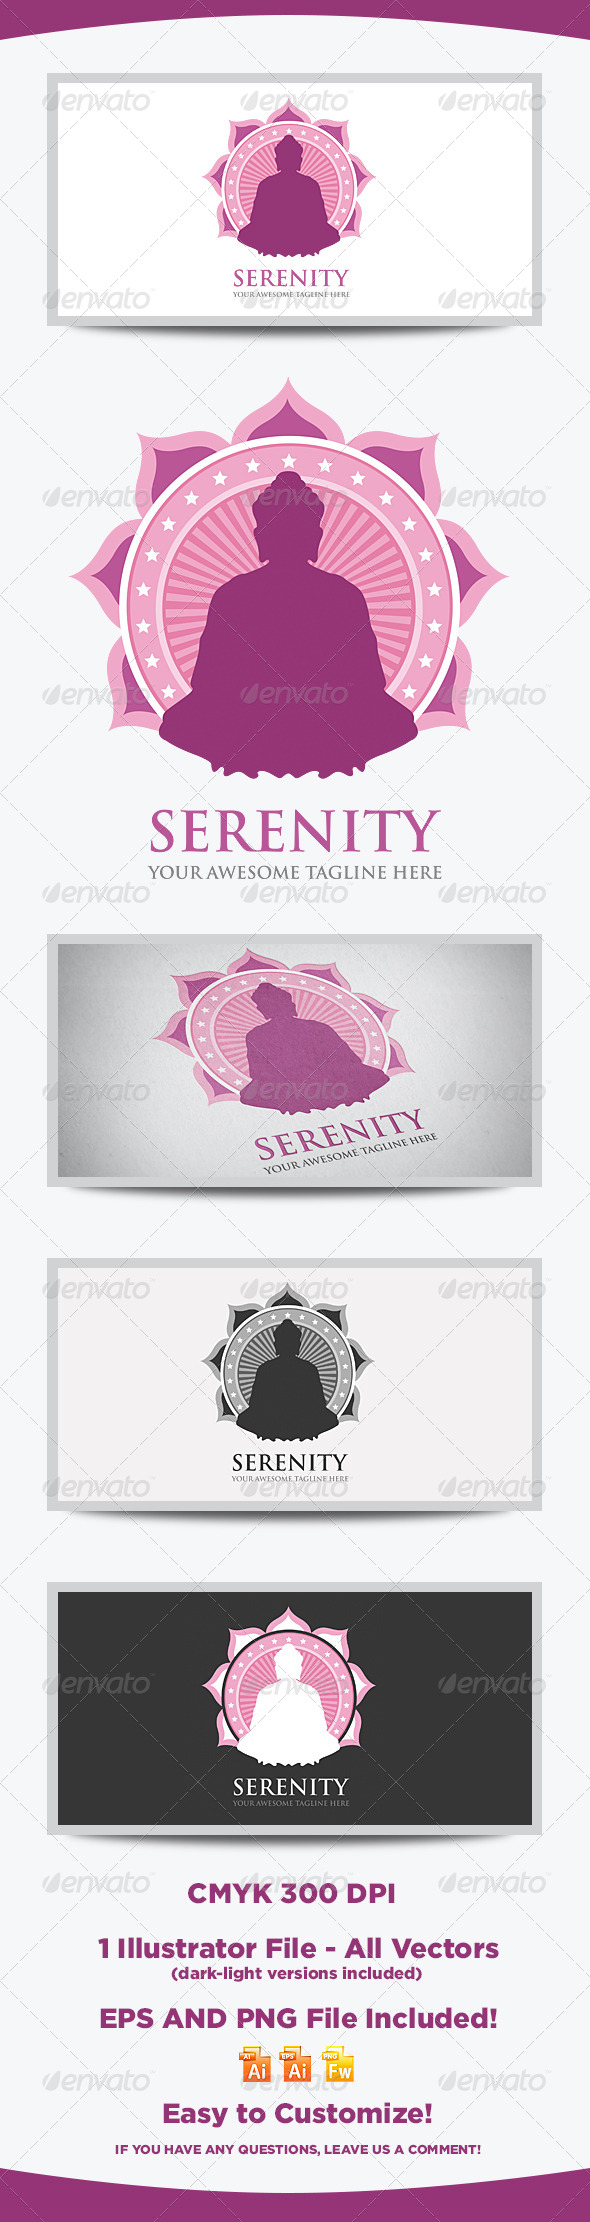 GraphicRiver Serenity Logo Template 8068042